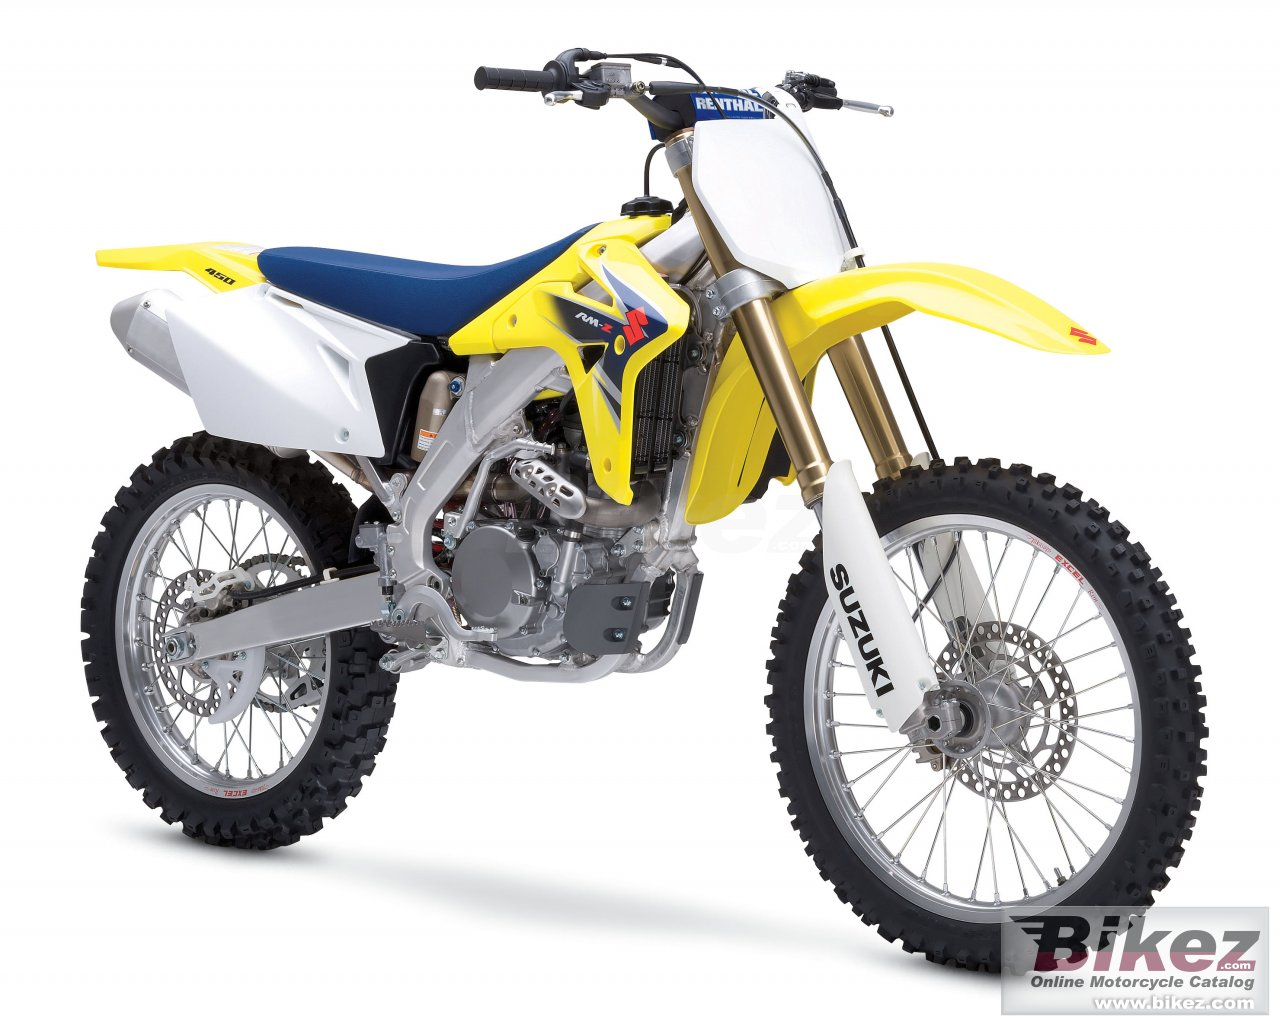 Big Suzuki rm-z 450 picture and wallpaper from Bikez.com